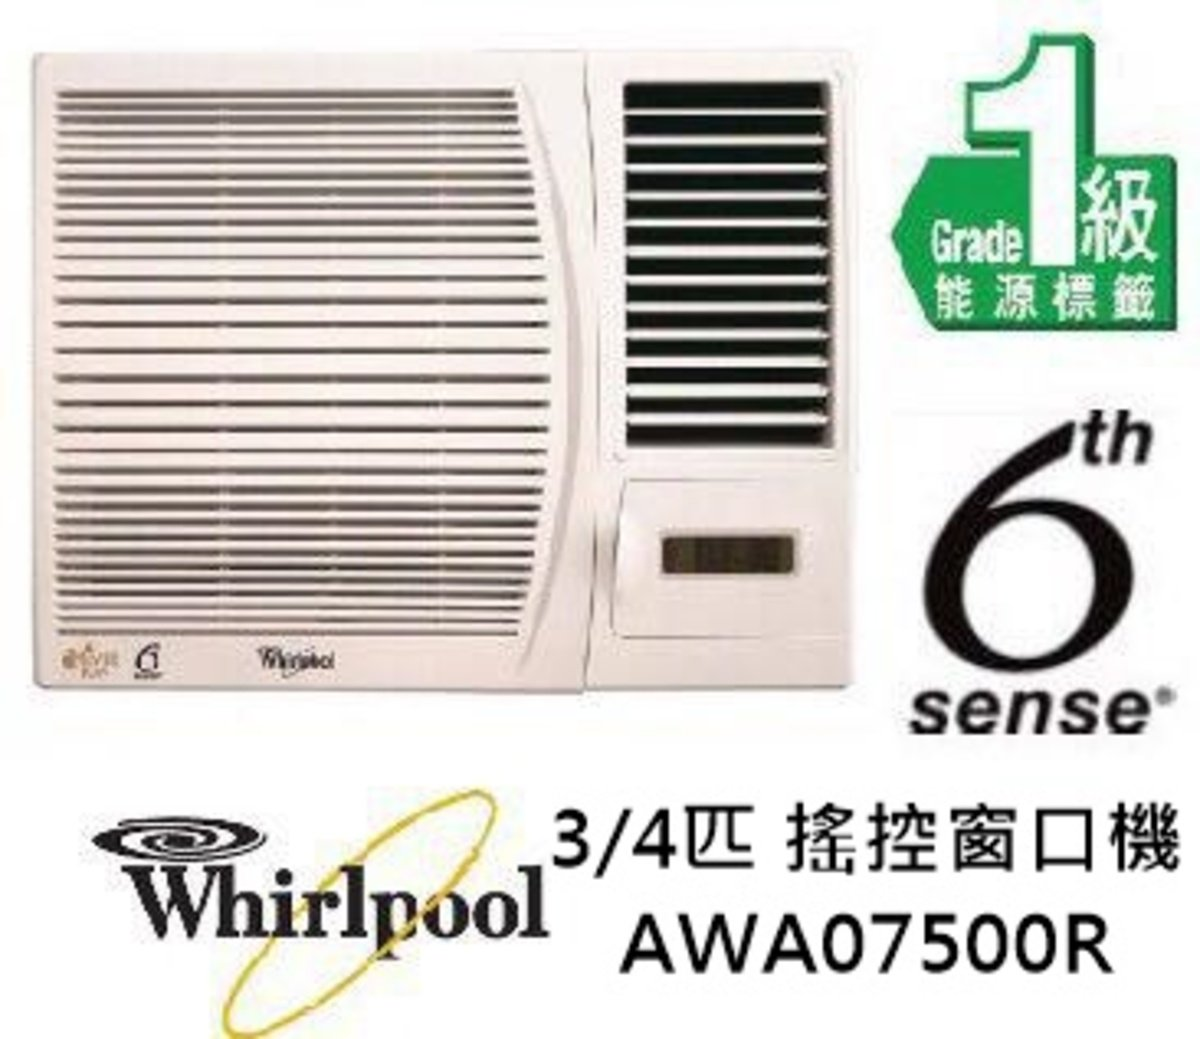 whirlpool | awa07500r air conditioner | hktvmall online shopping